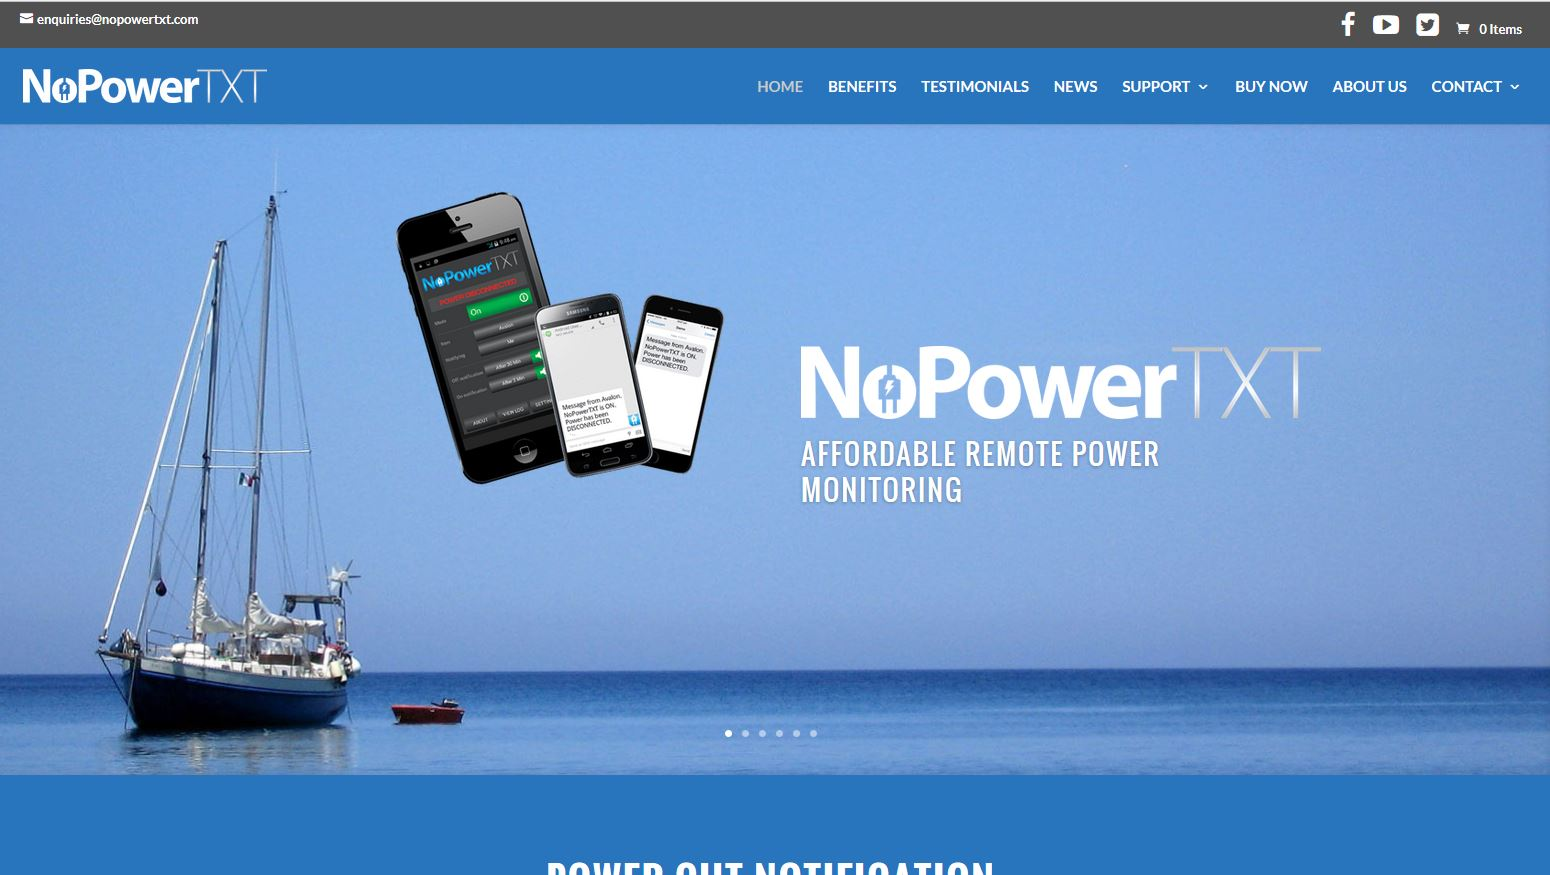 Website for NoPowerTXT in Australia